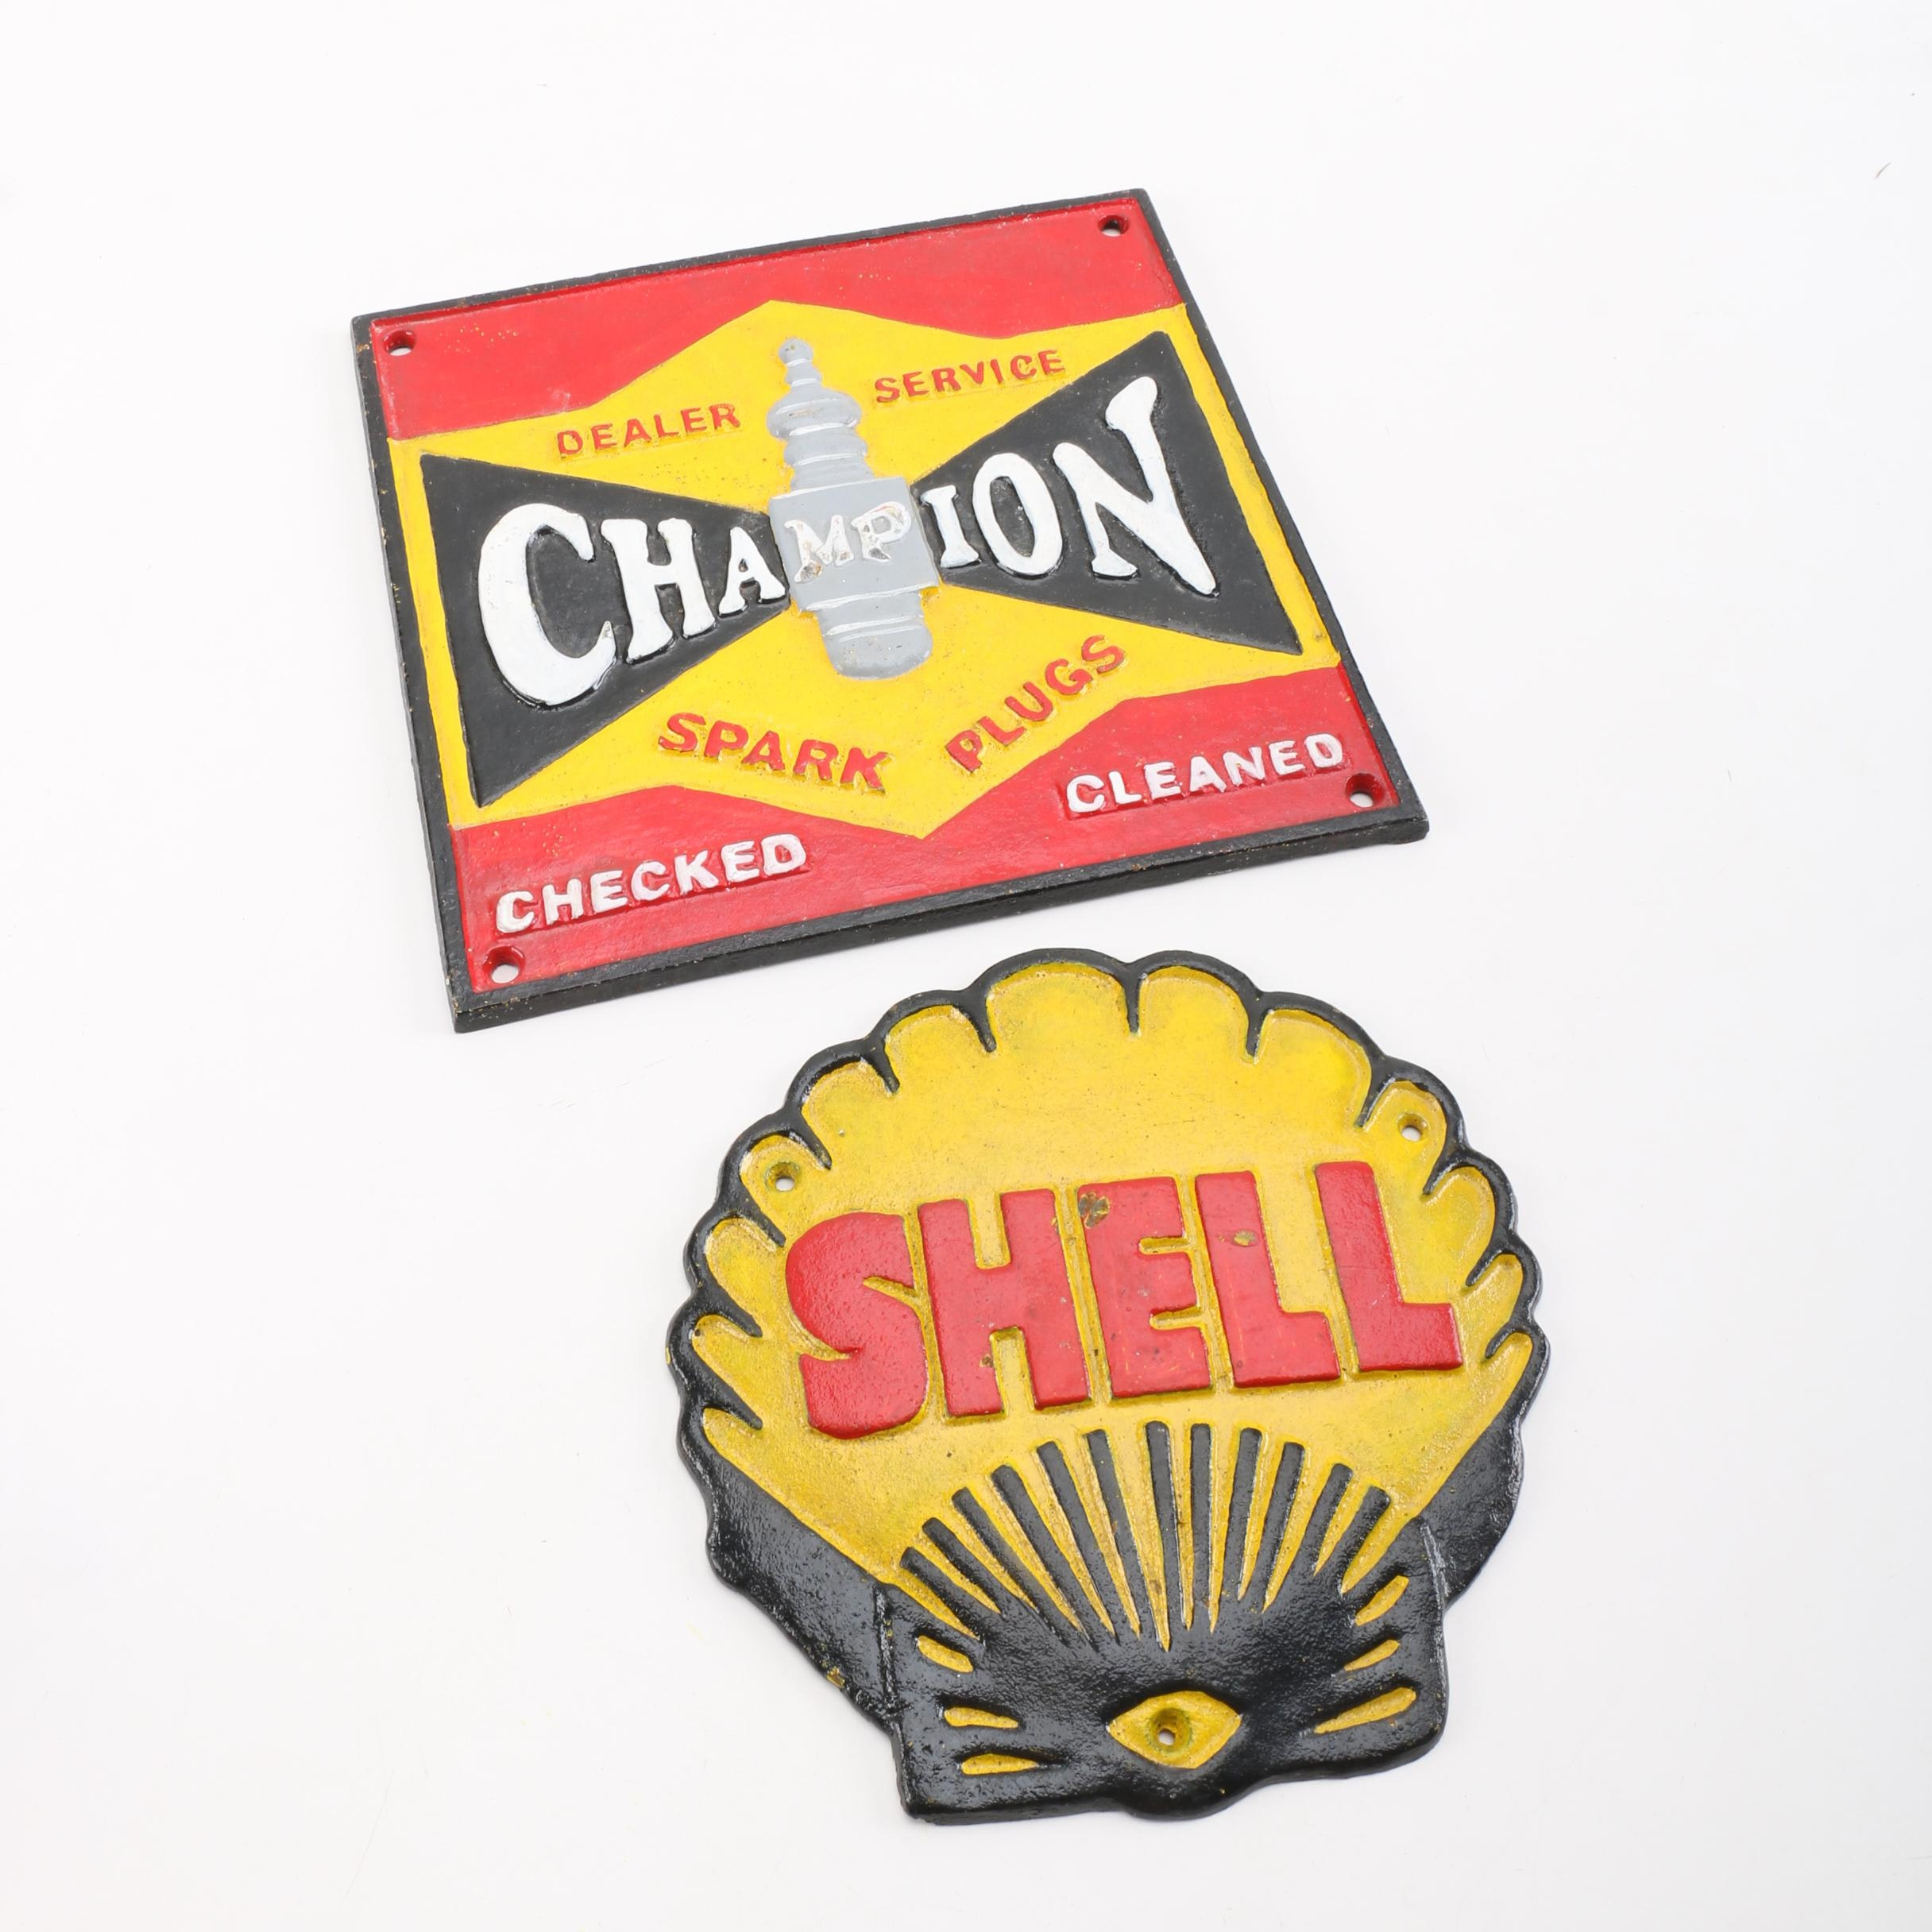 Cast Iron Shell Oil and Champion Sparks Signs